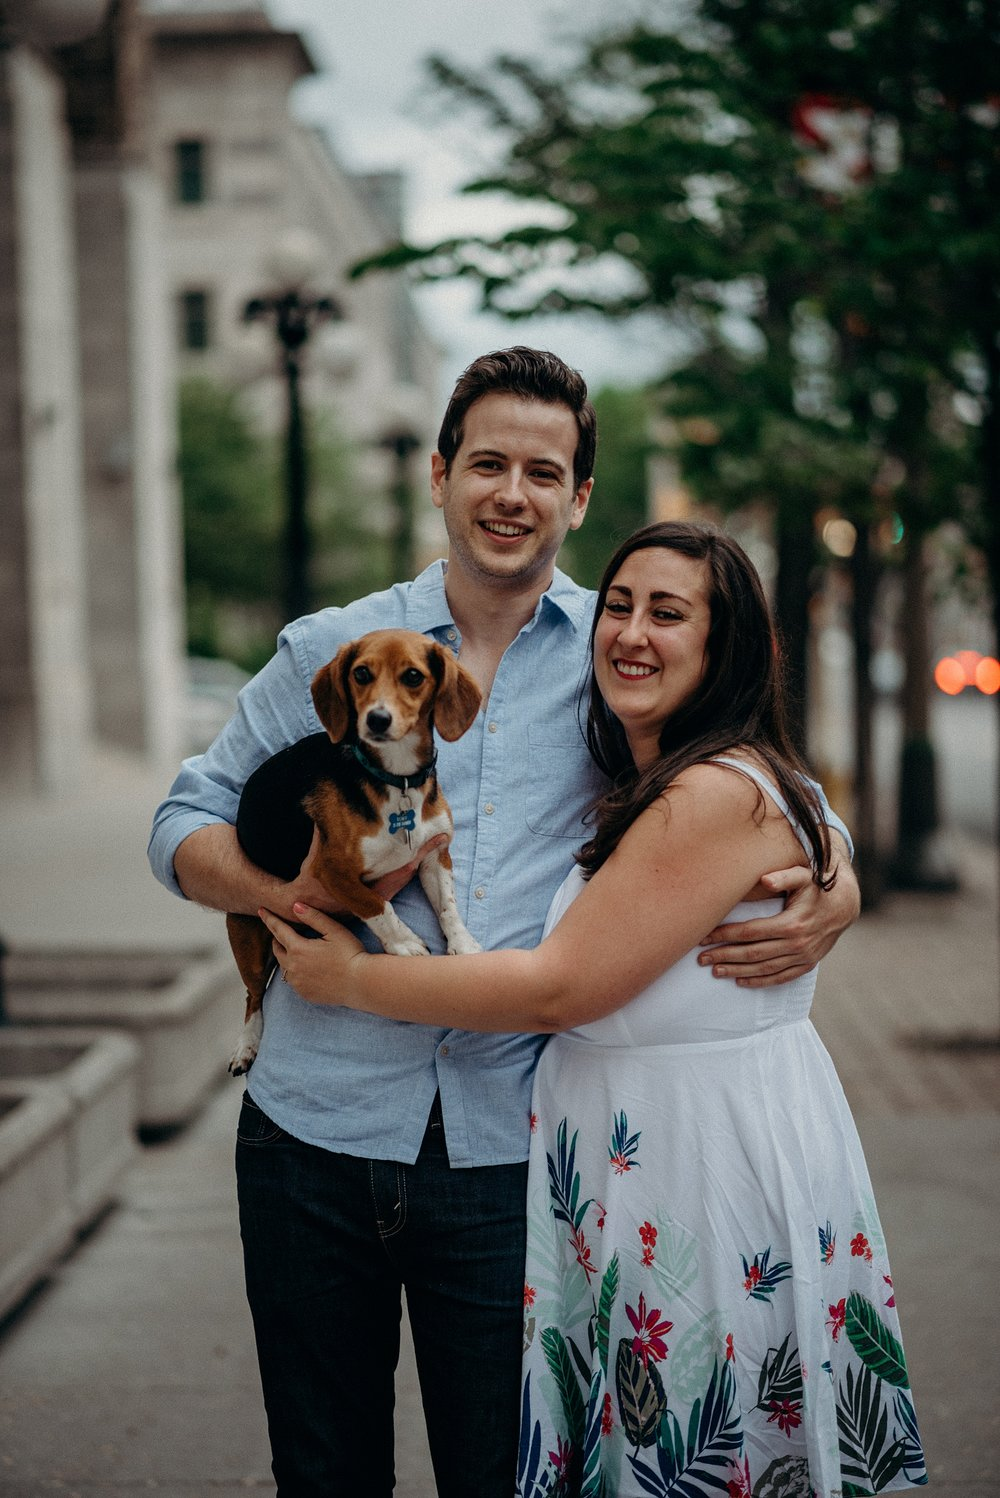 Bringing your Dog or Cat to an engagement session. Mocha Tree Studios Ottawa Toronto Montreal Wedding and Engagement Photographer and Videographer Dark Moody Intimate Authentic Modern Romantic Cinematic Best Candid 3